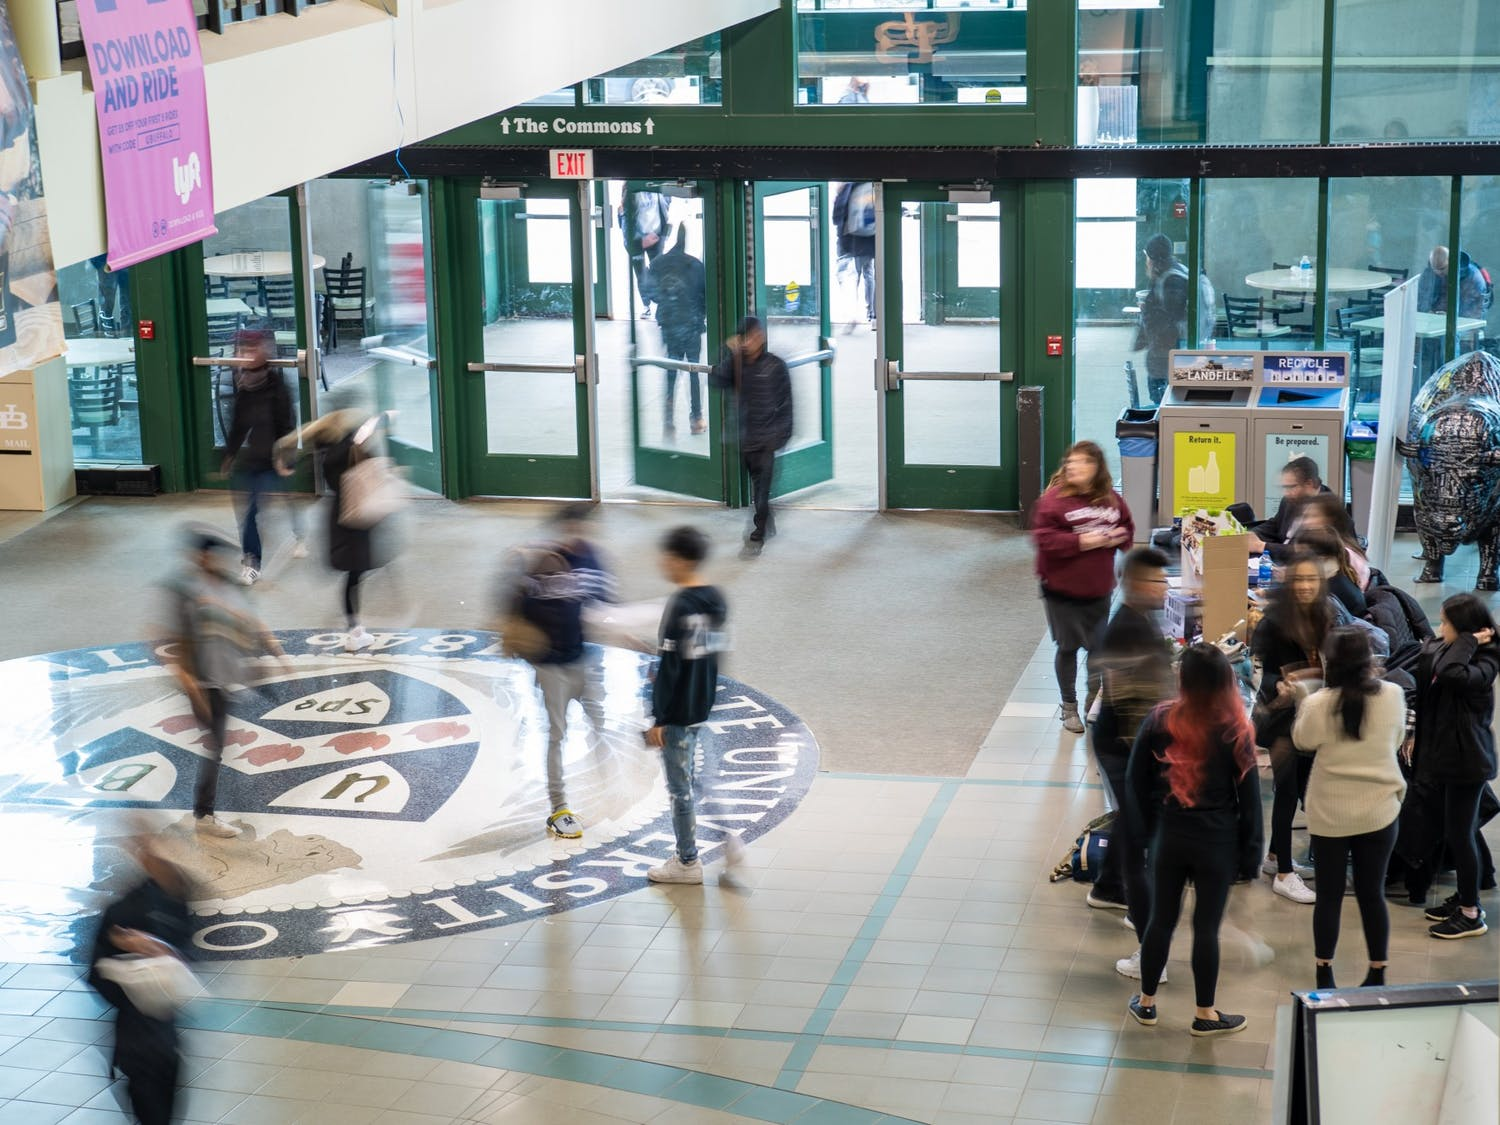 Students walking in the Student Union.